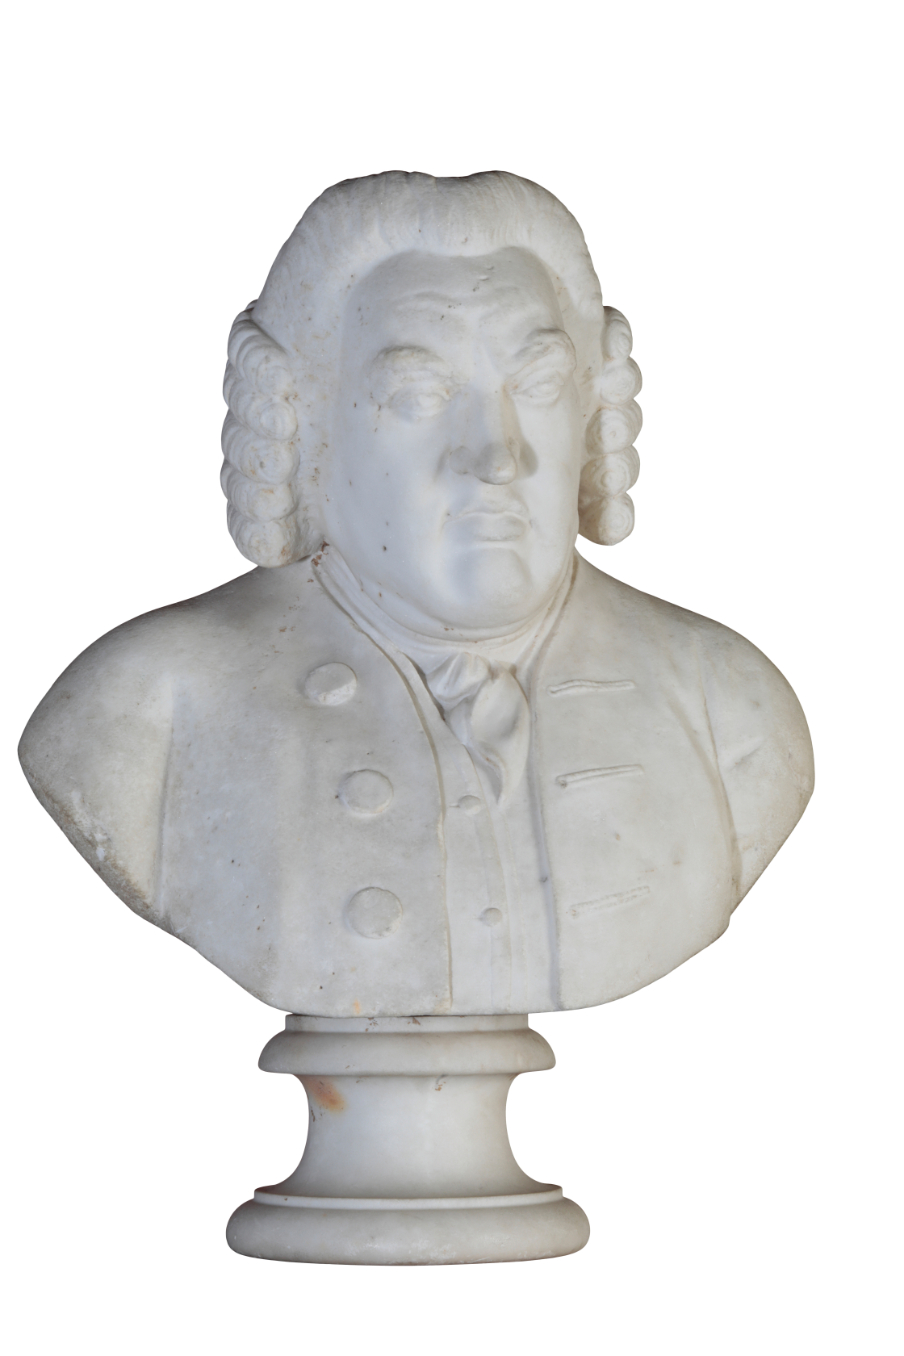 A SCULPTED WHITE MARBLE BUST OF DR SAMUEL JOHNSON,